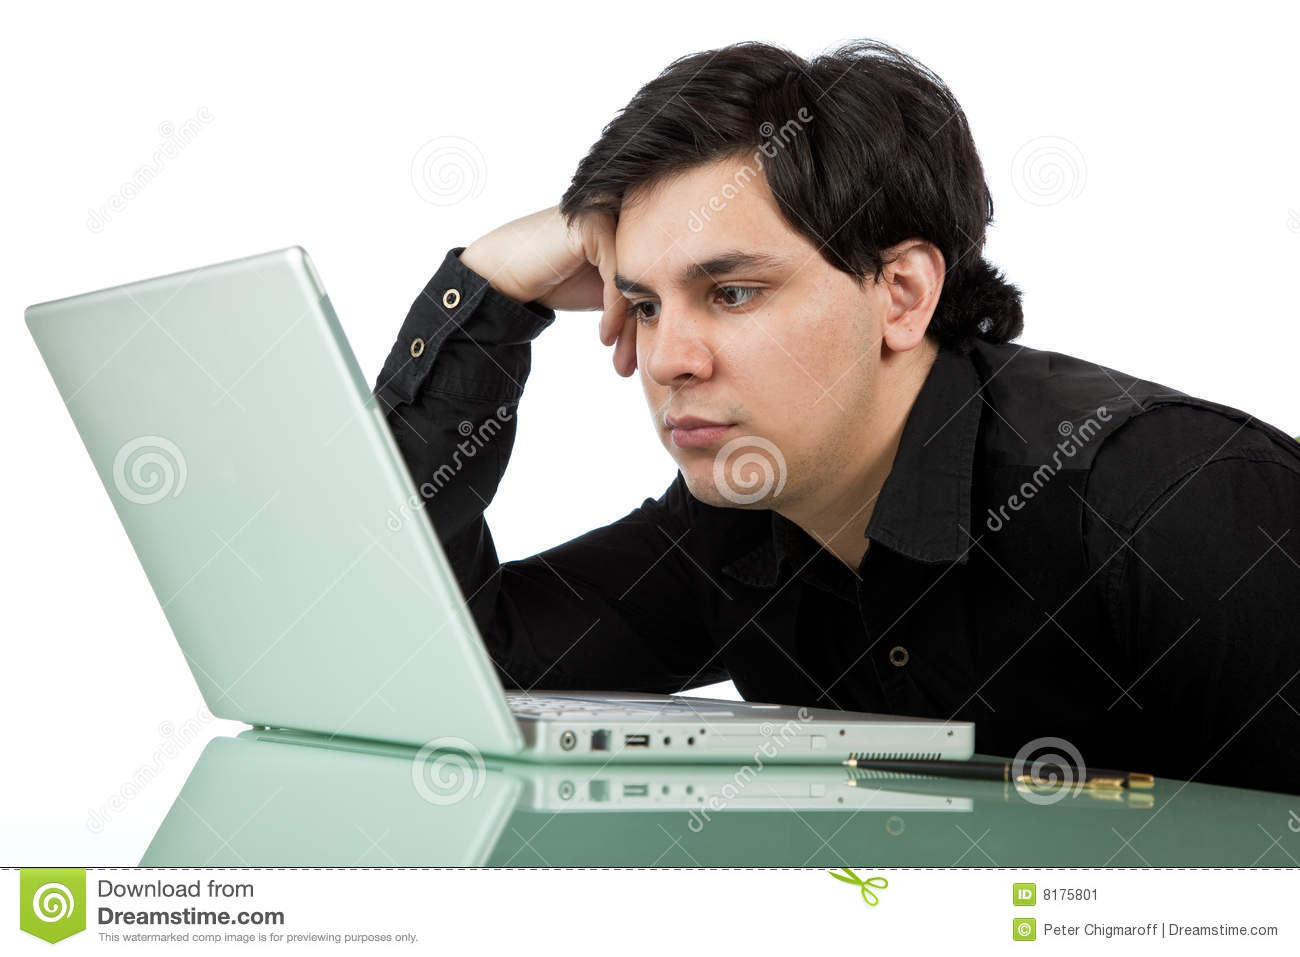 Stock image latino man working at a laptop computer